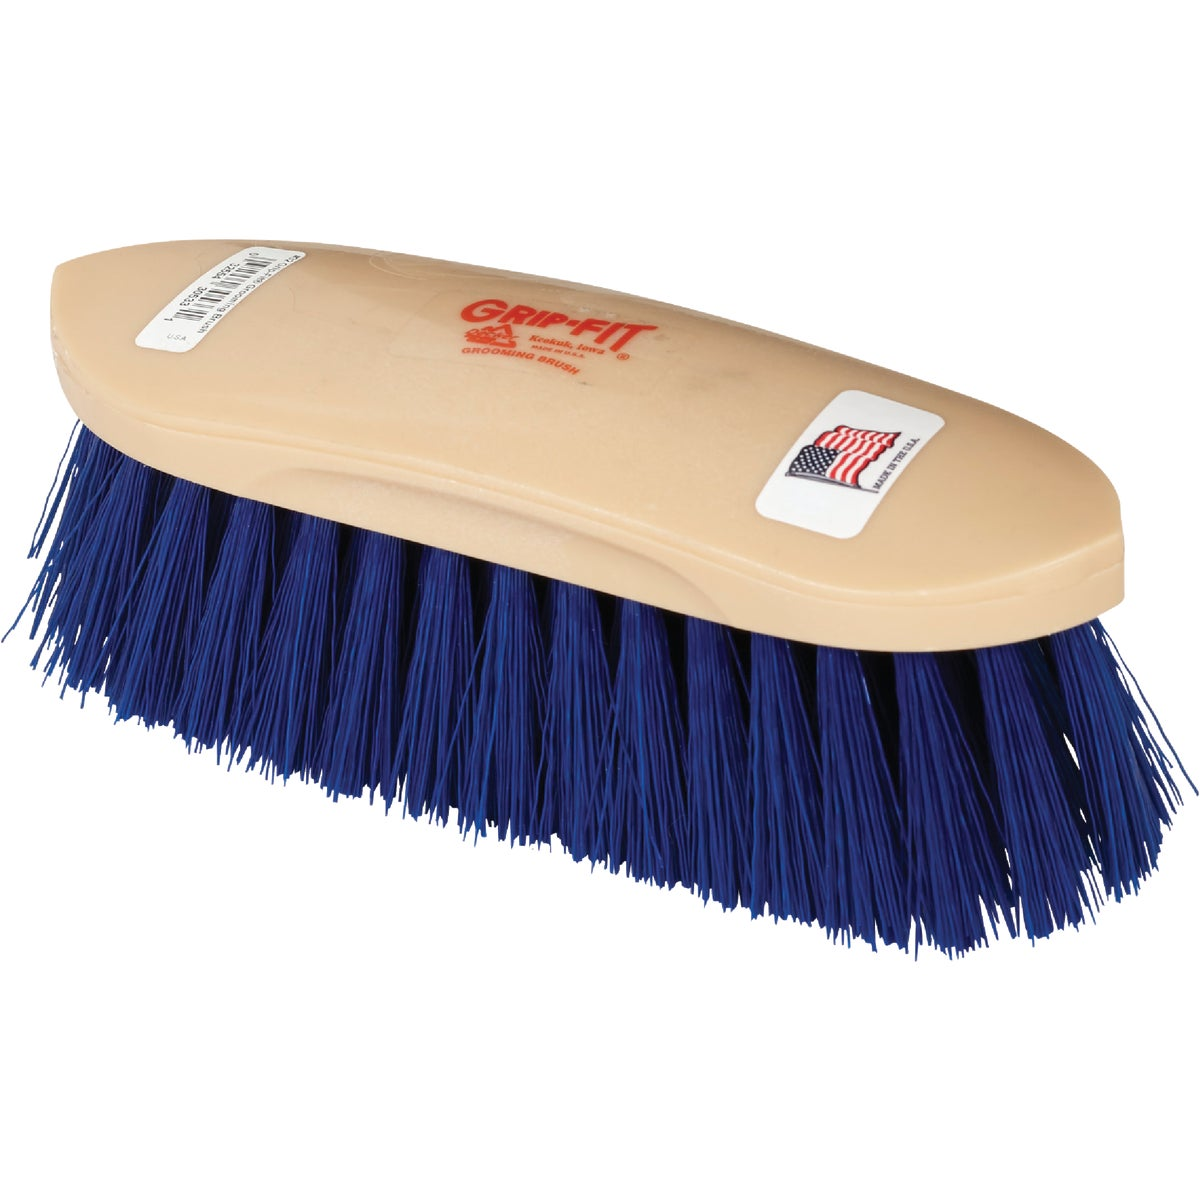 SYNTHETIC GROOMING BRUSH